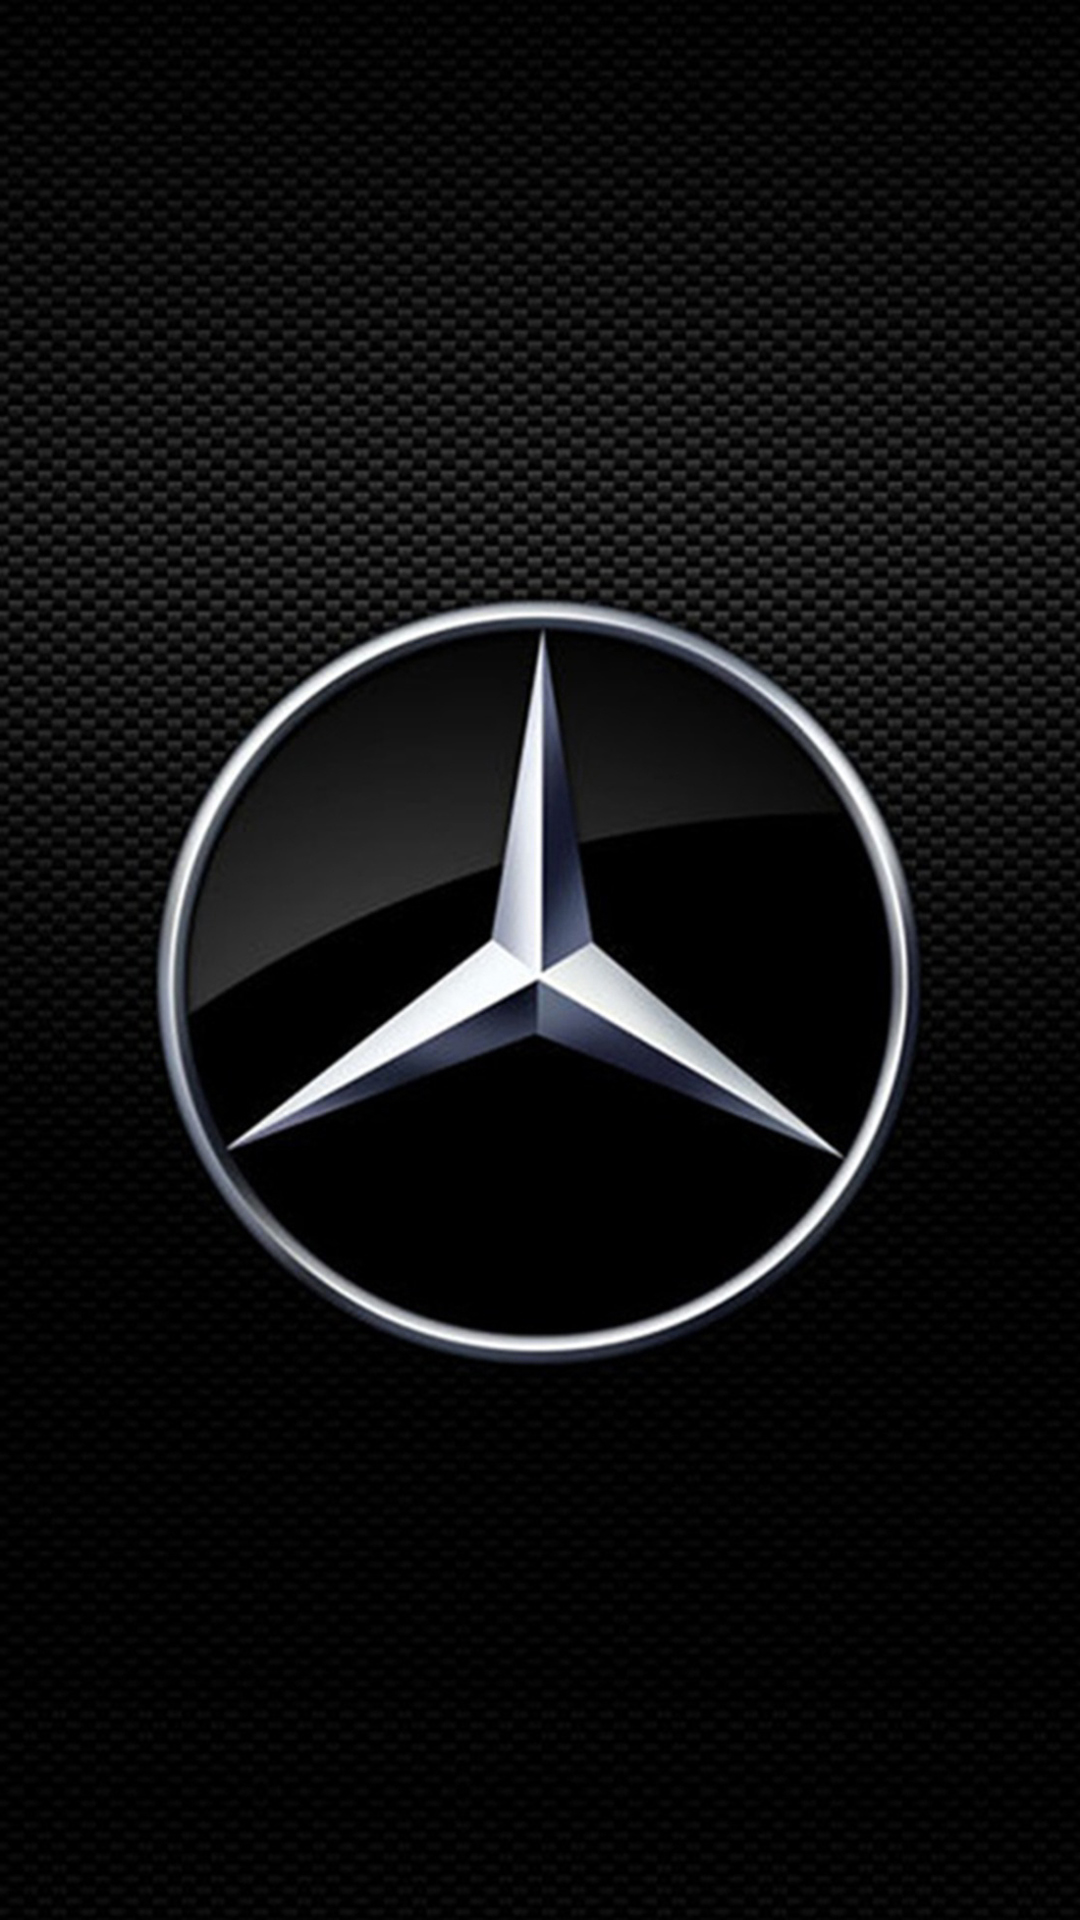 mercedes benz logo 123mobilewallpaperscom